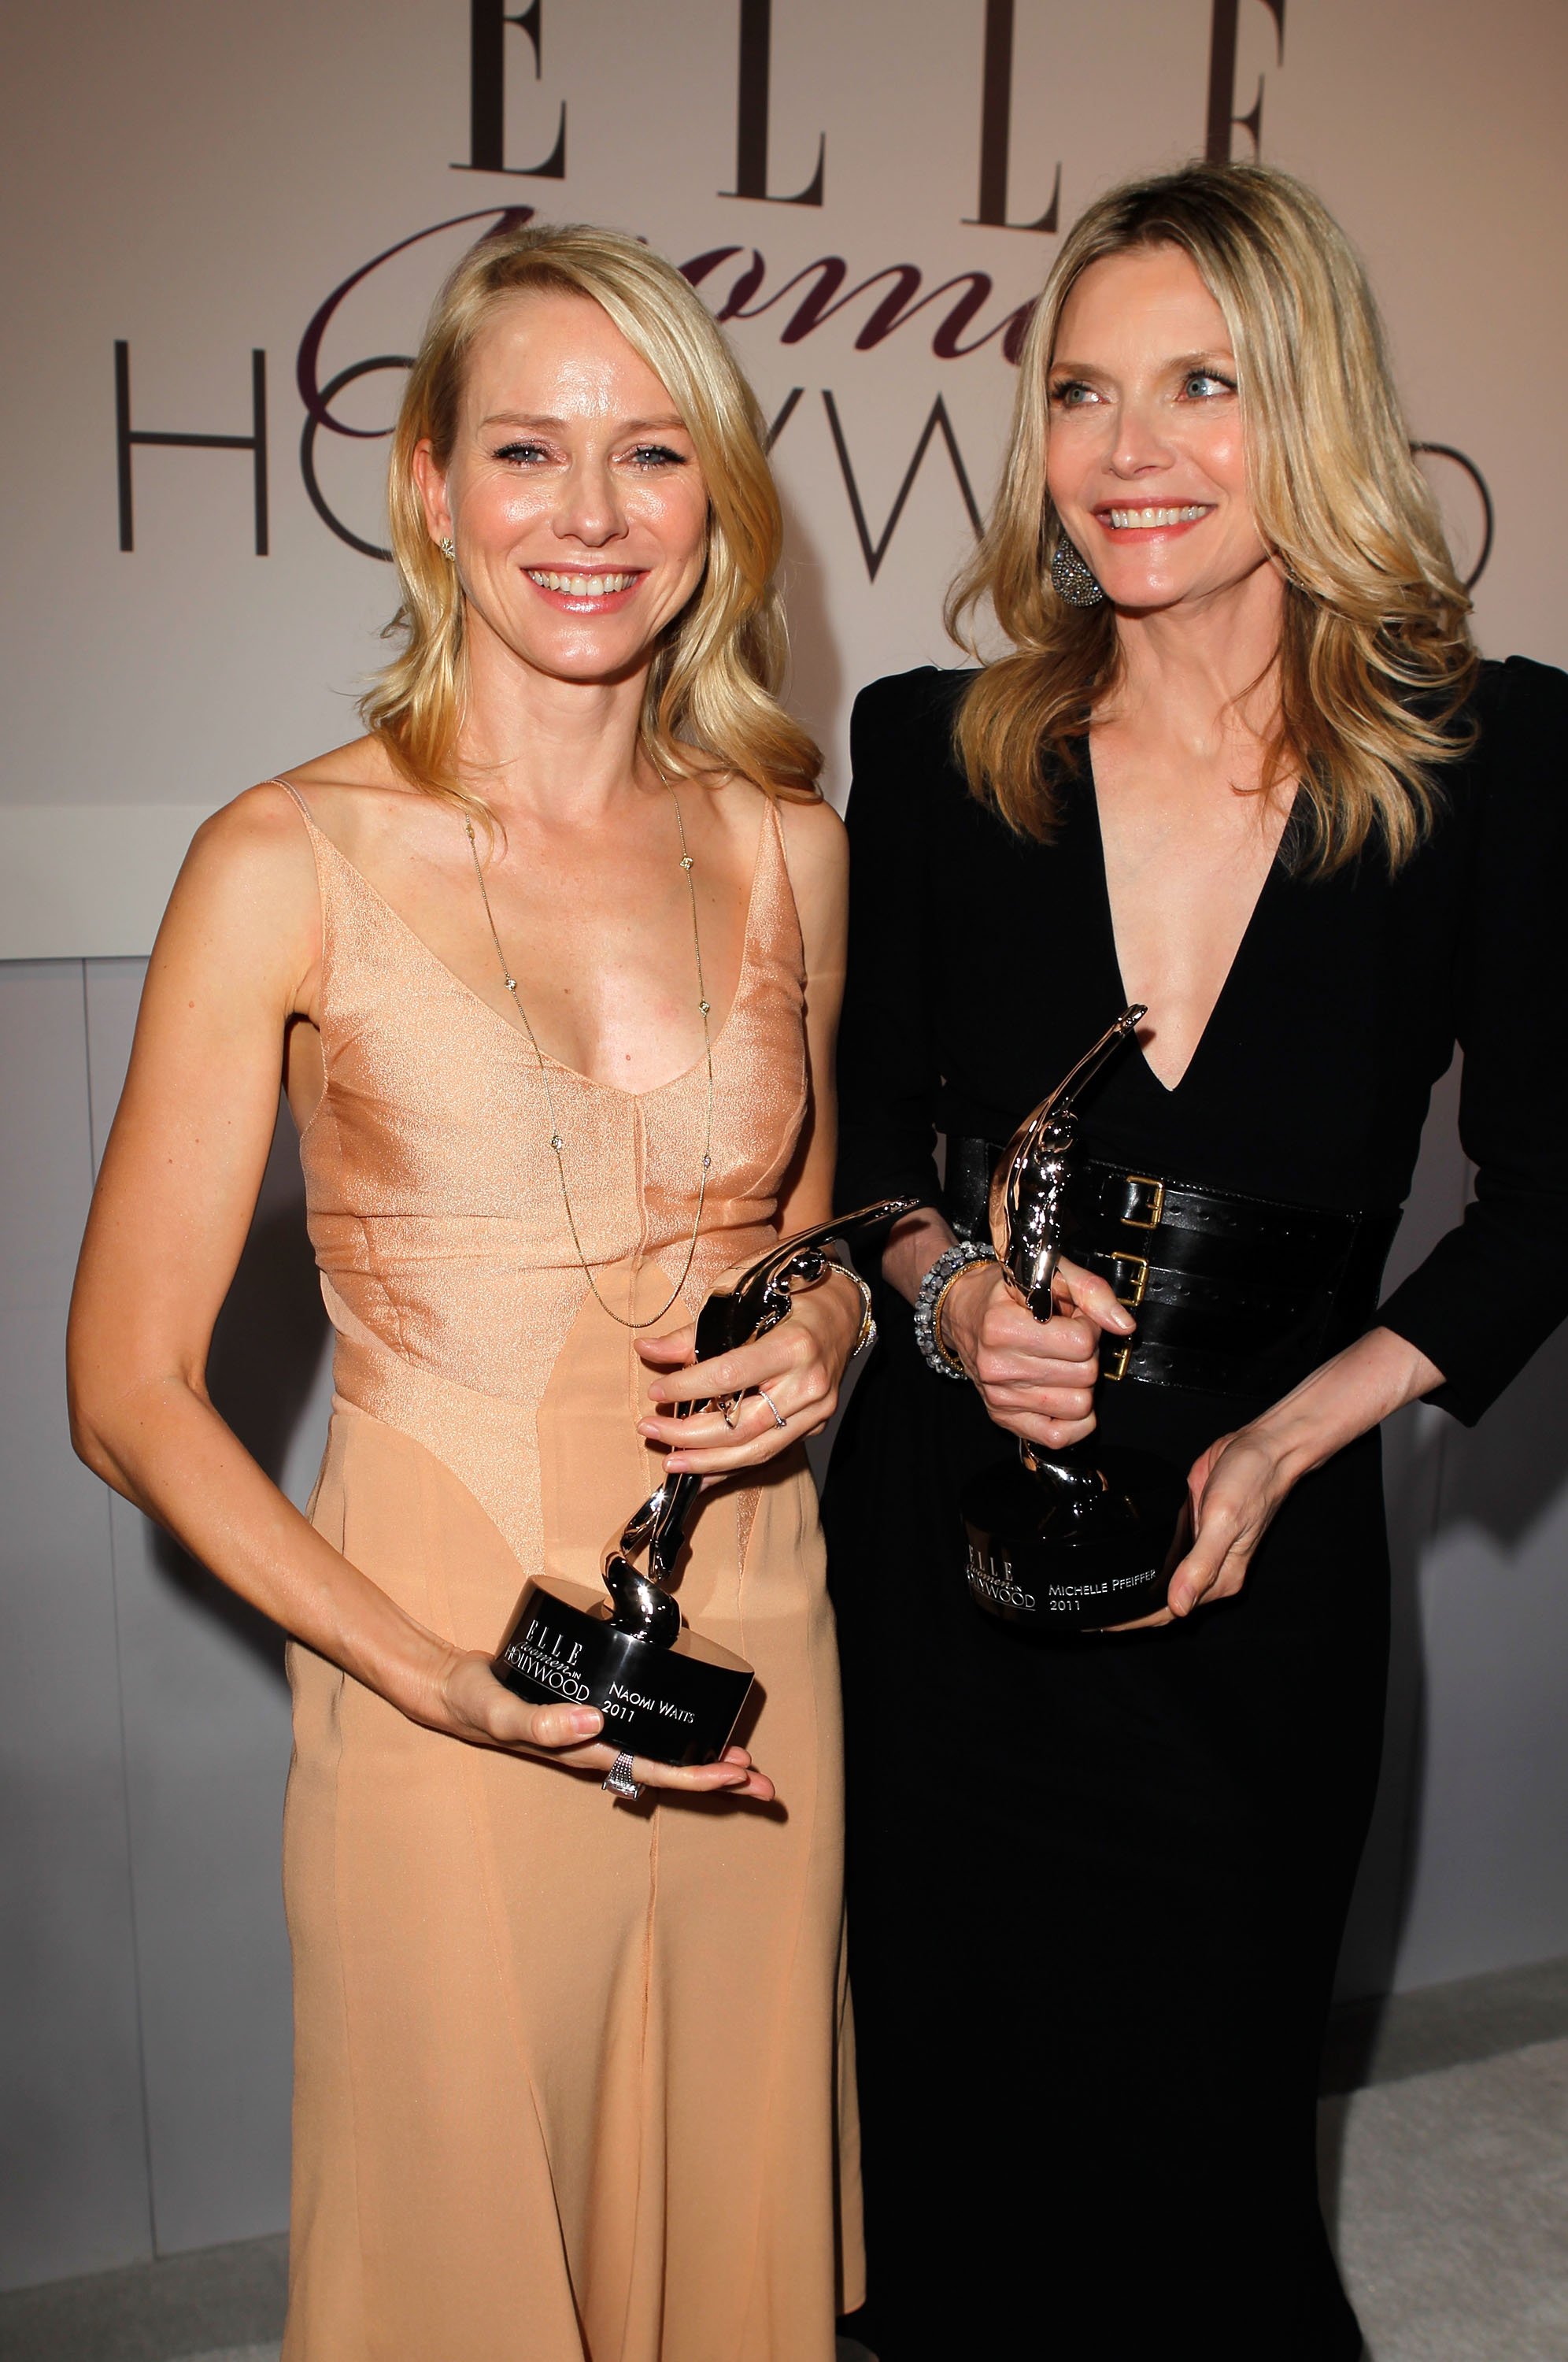 Naomi Watts and Michelle Pfeiffer were honored by Elle magazine.